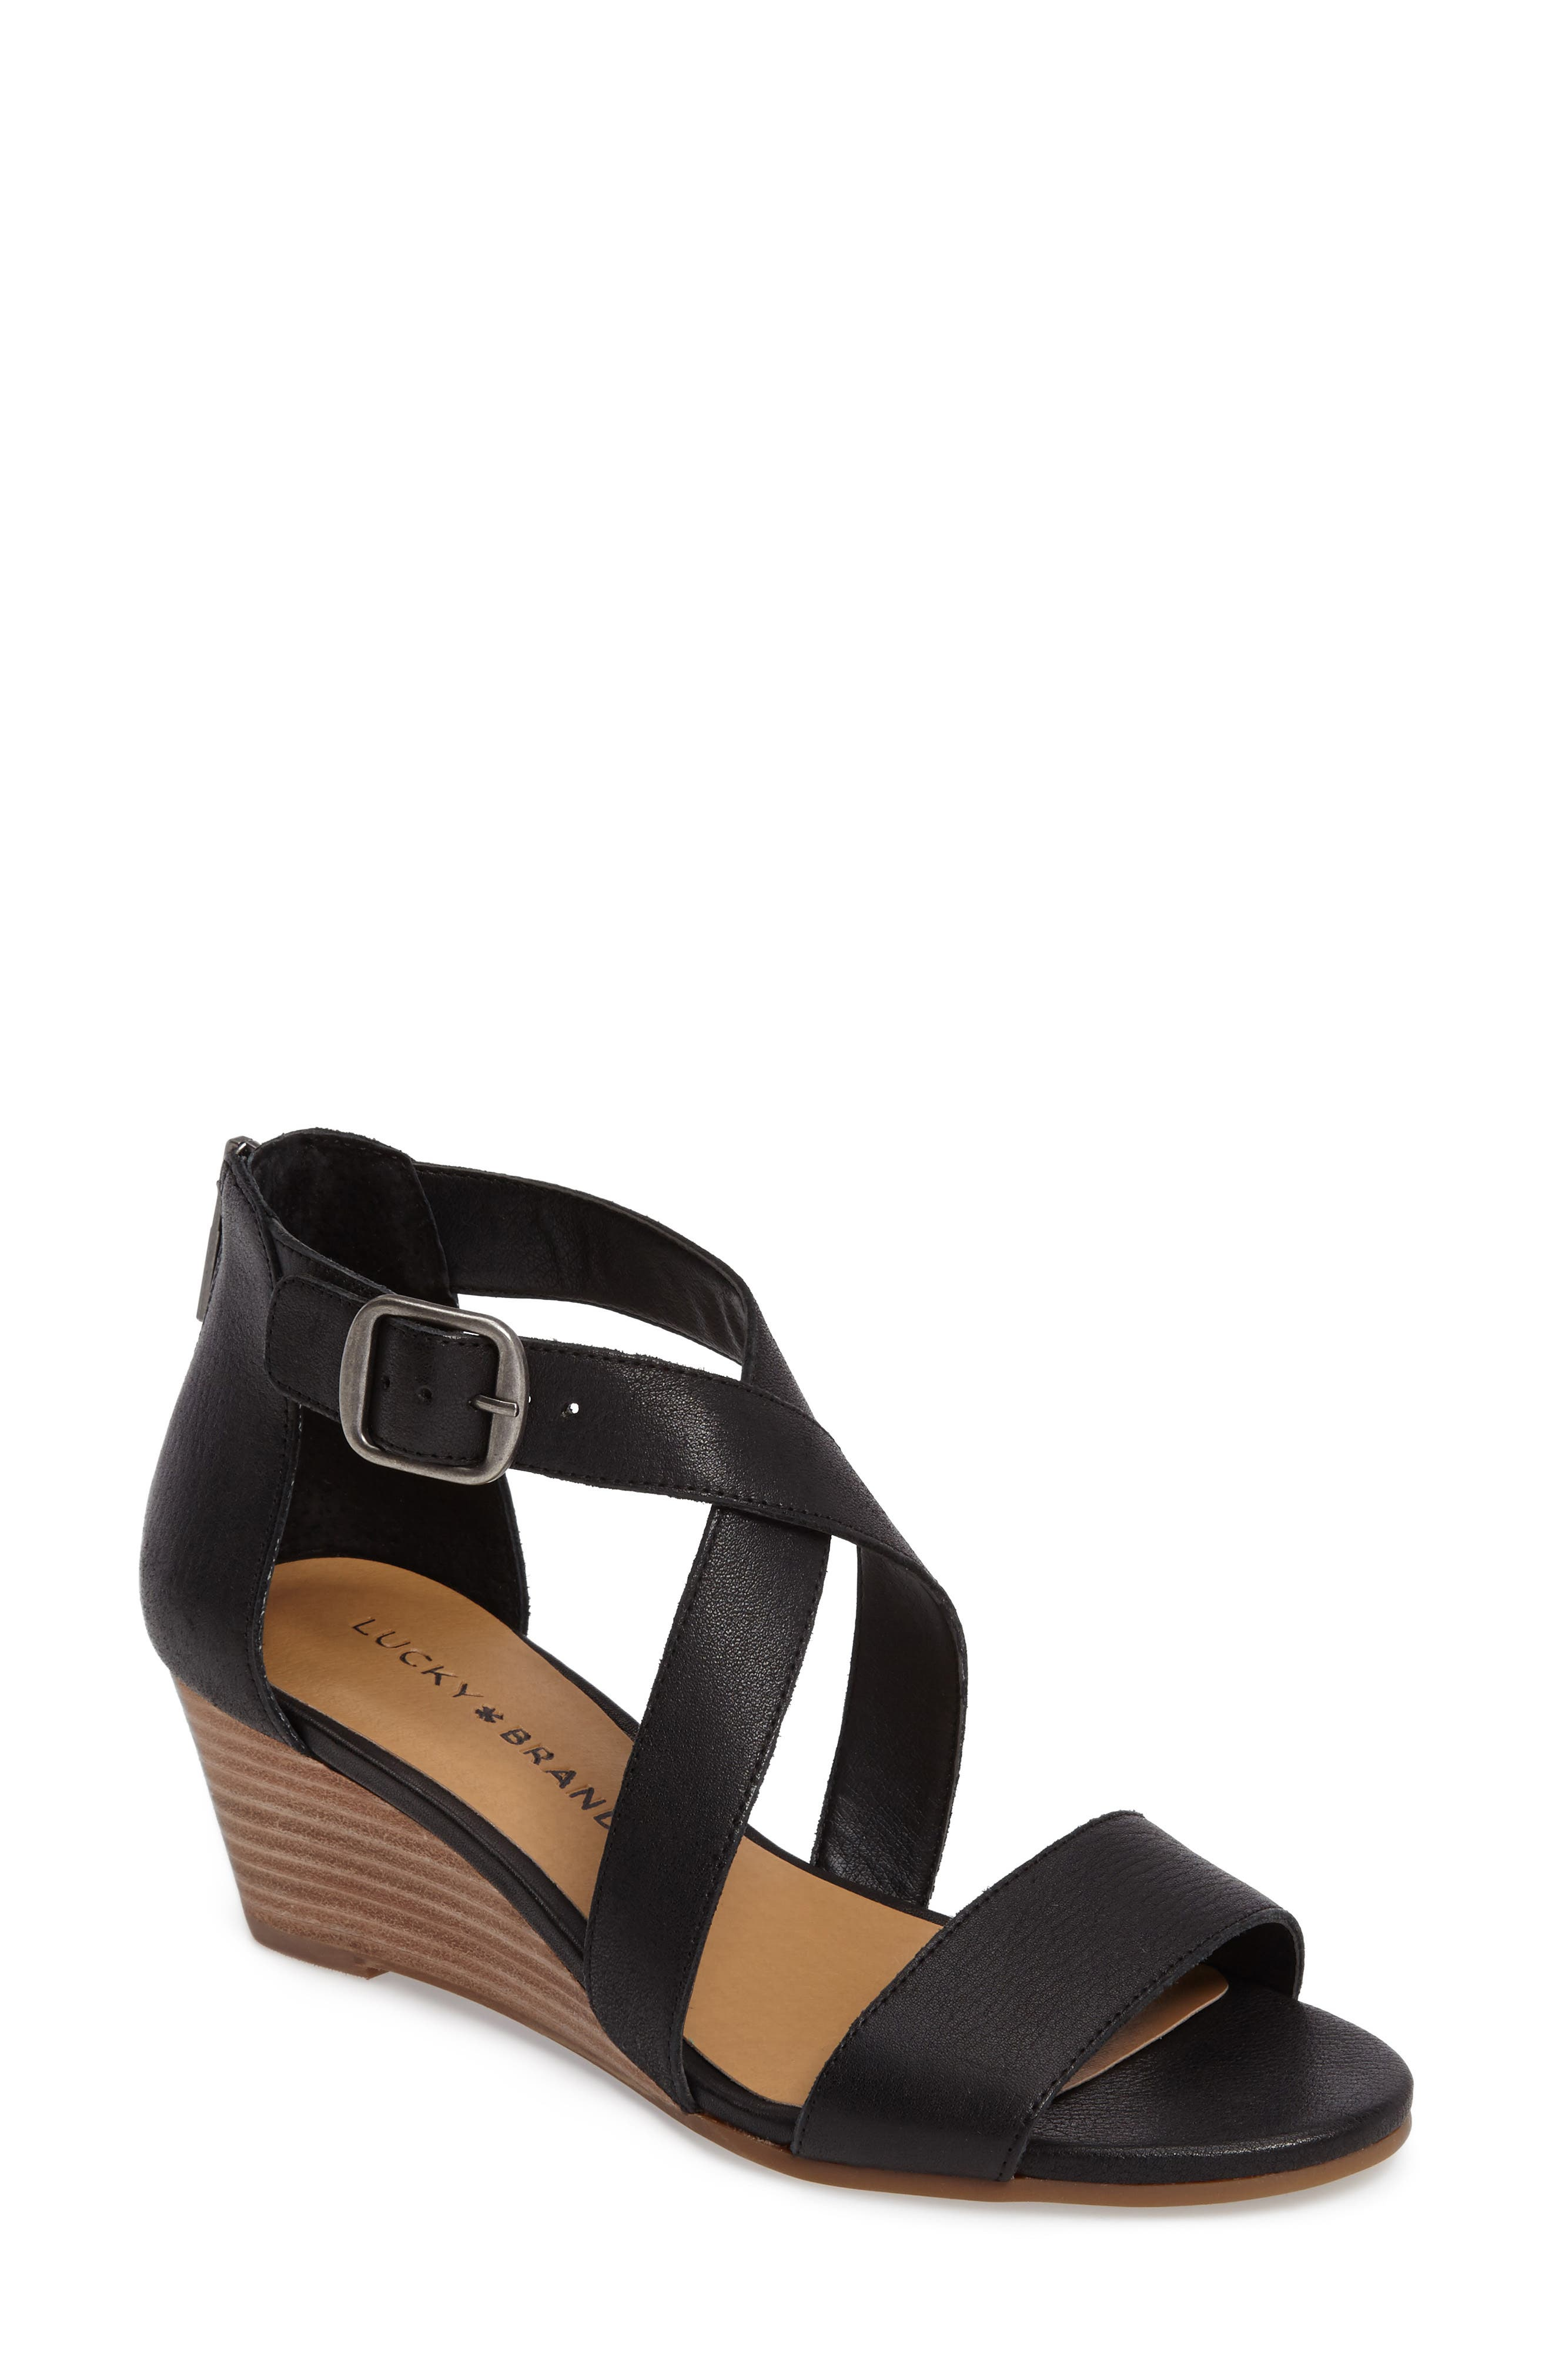 LUCKY BRAND, Jenley Wedge Sandal, Main thumbnail 1, color, BLACK LEATHER